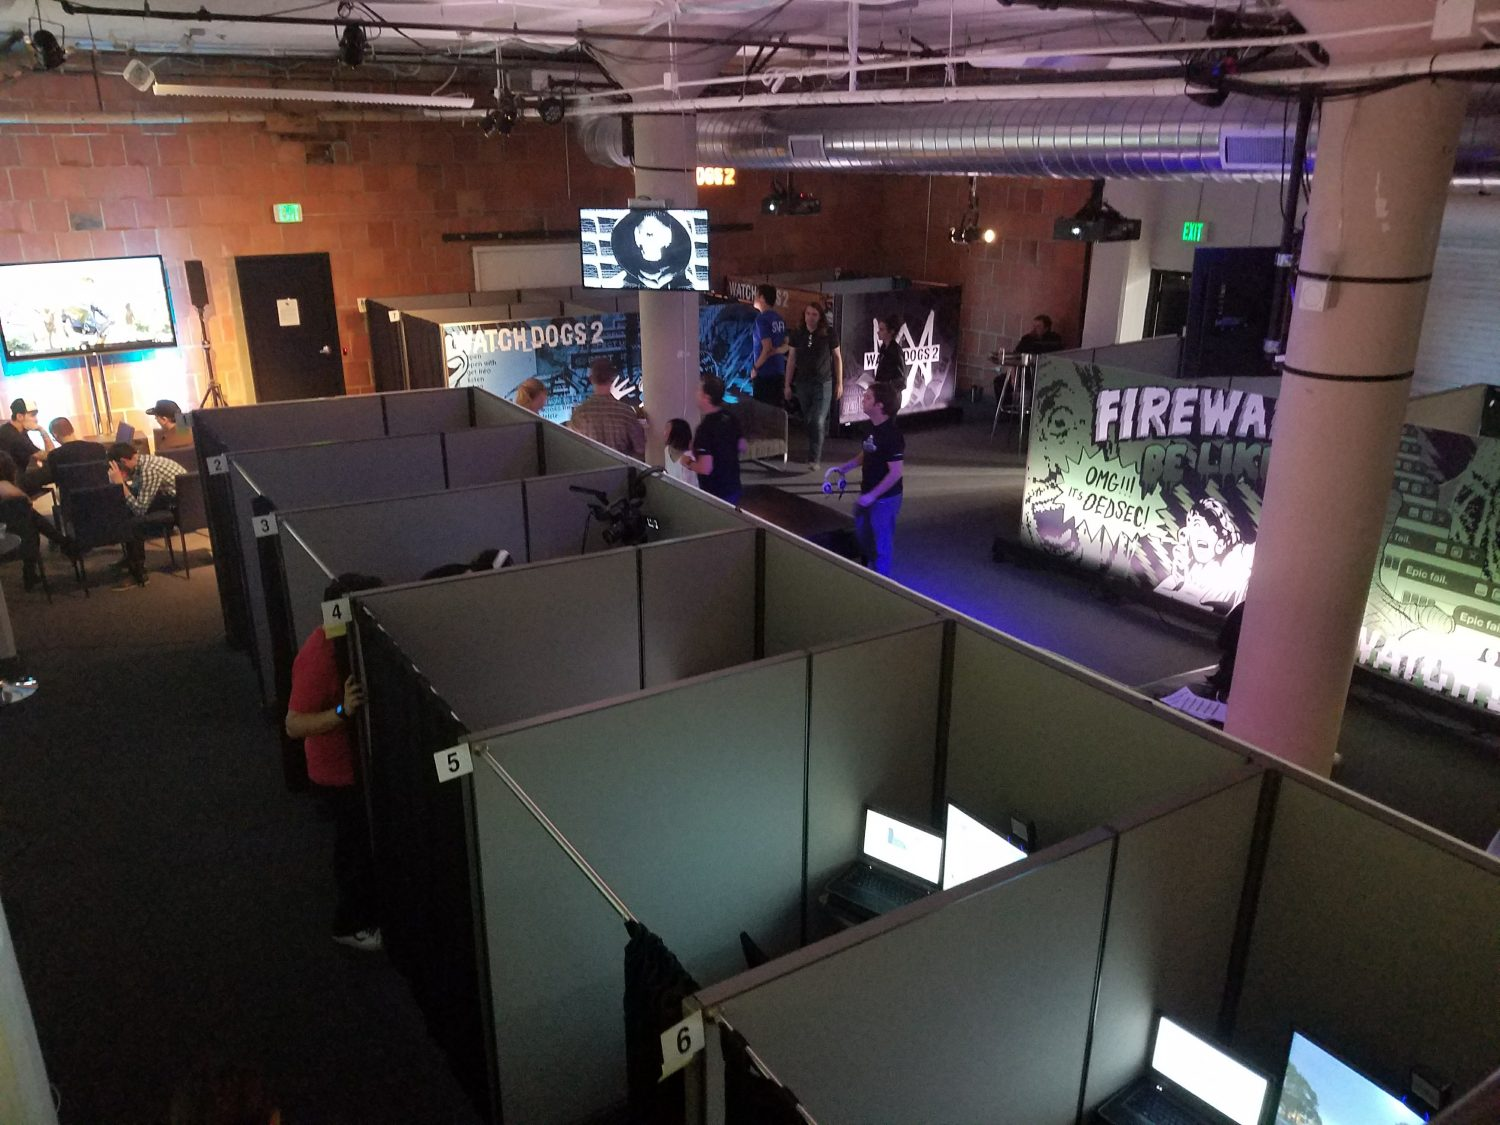 Overhead view of the watchdogs 2 event